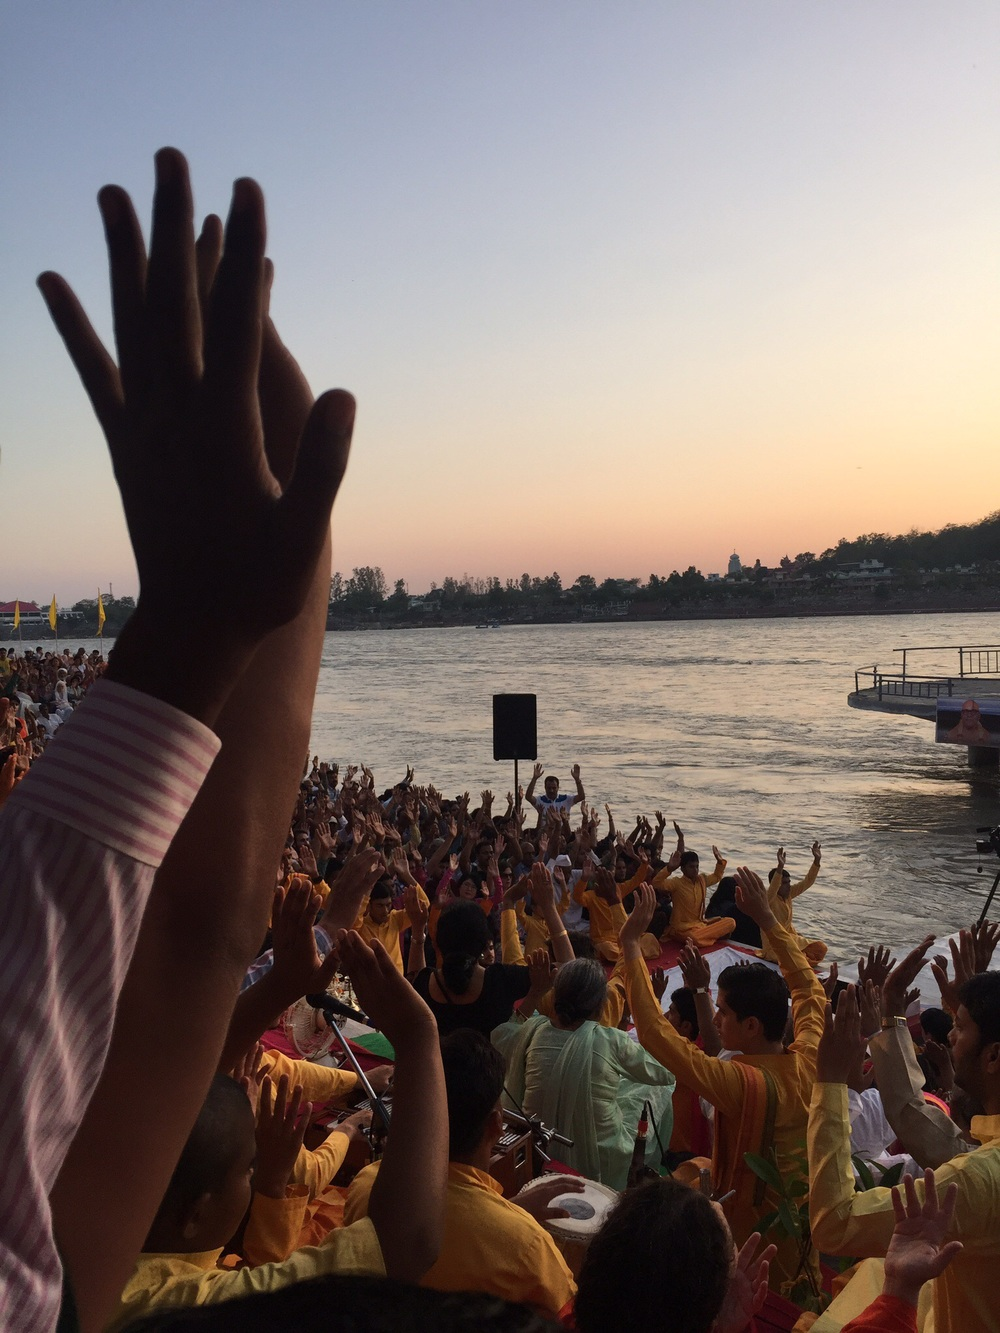 A Hindu celebration at sunset. Shanti shanti.